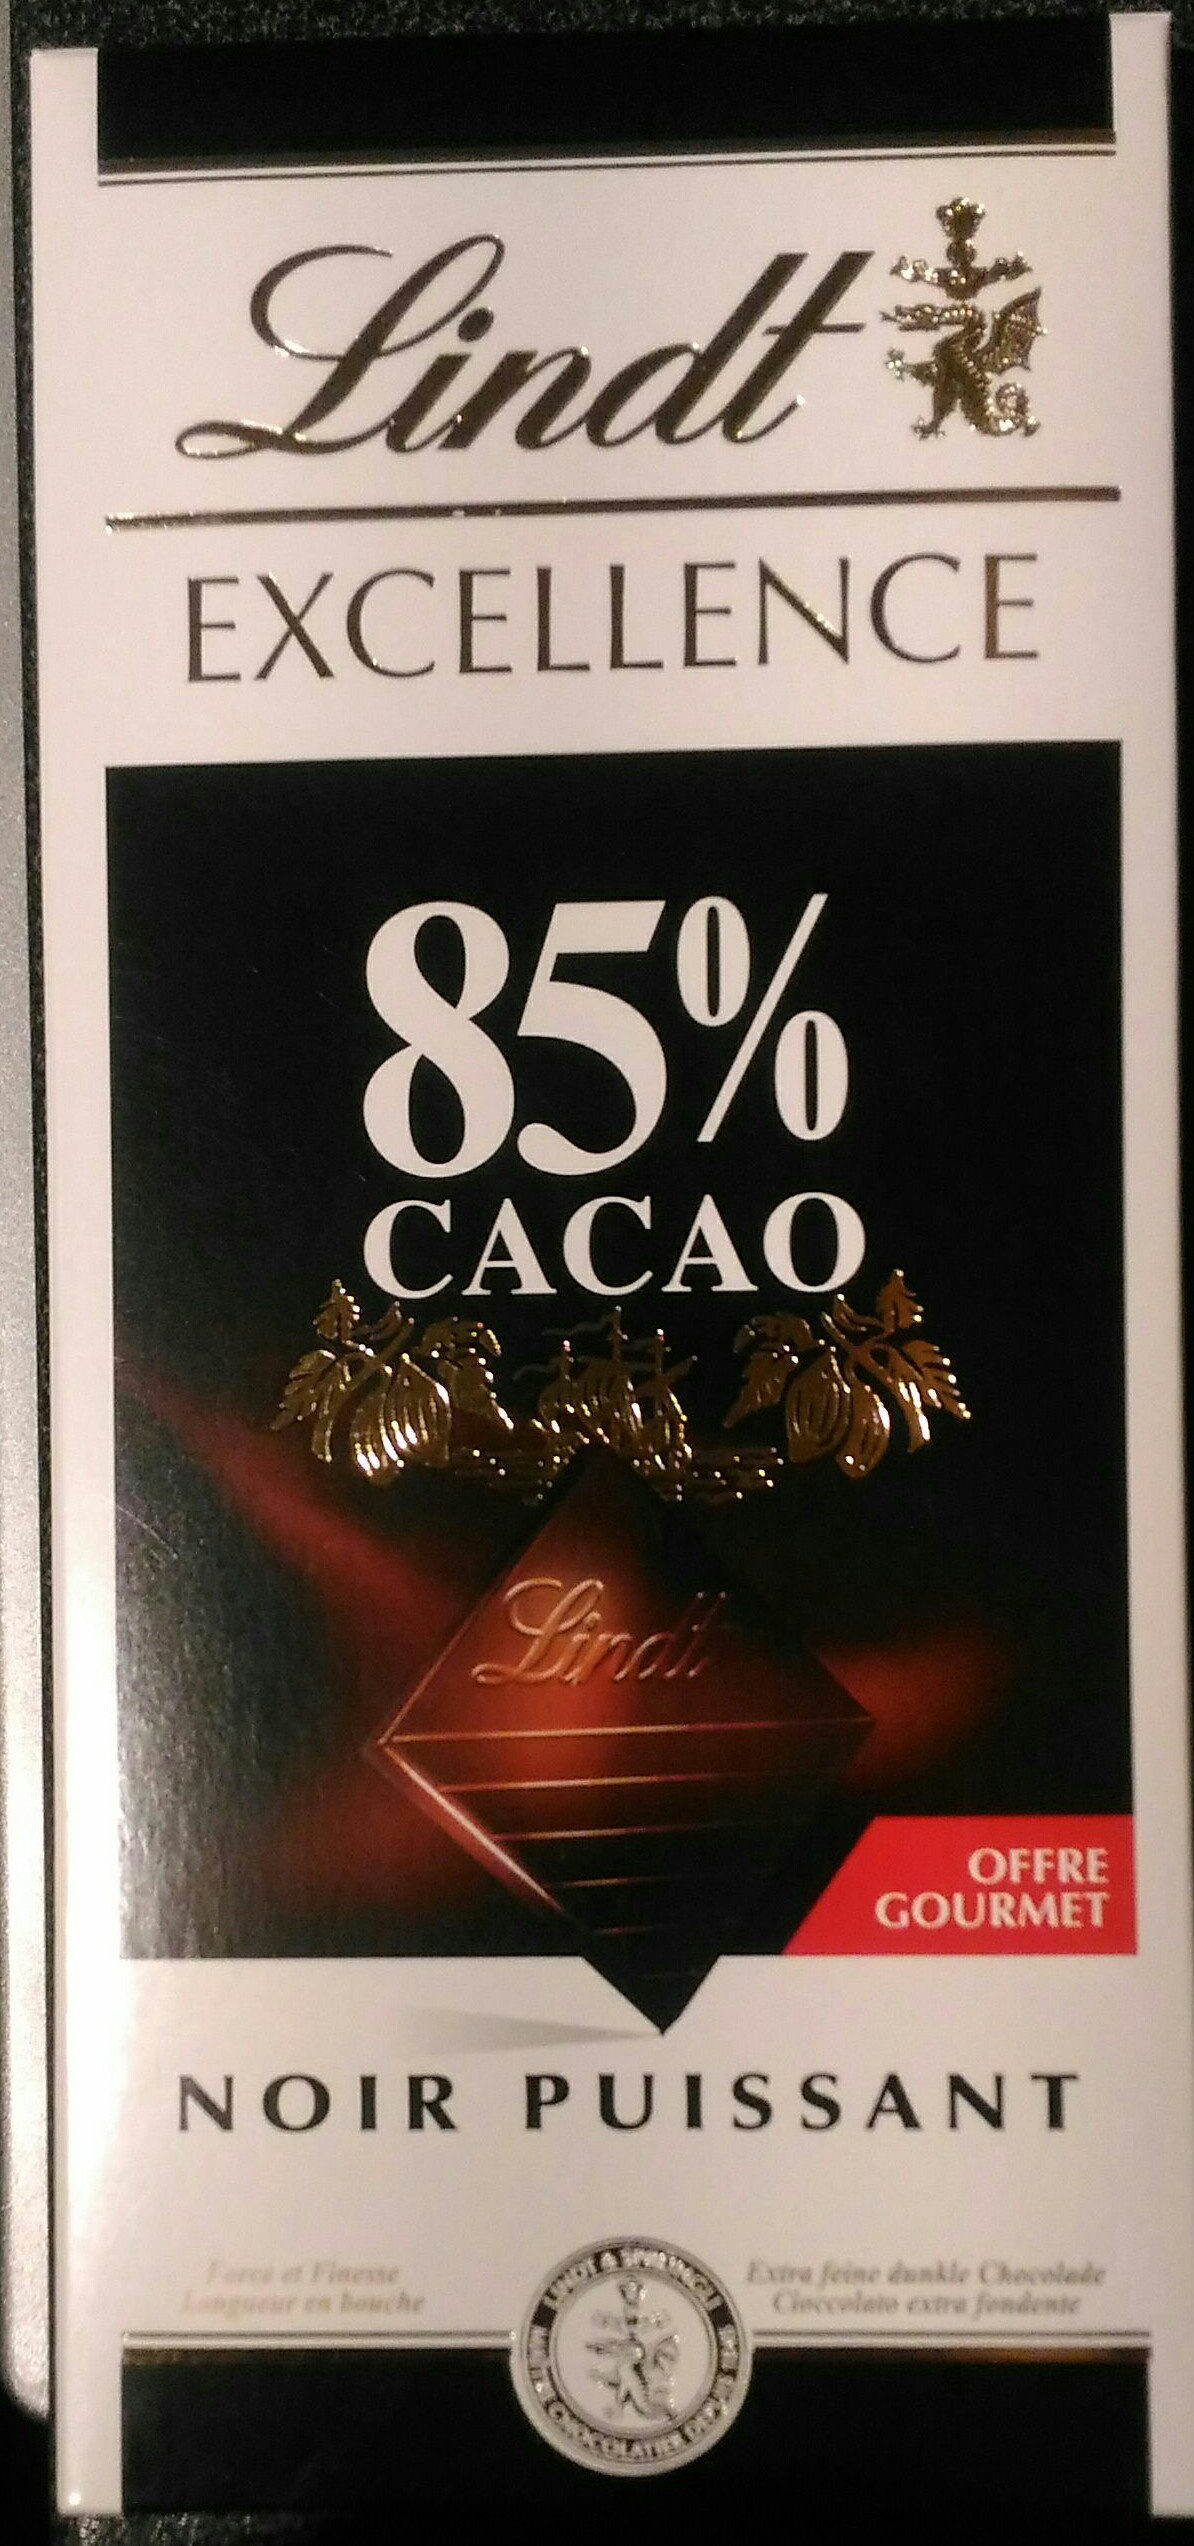 Excellence 85% Cacao Noir Puissant (offre gourmet) - Product - fr